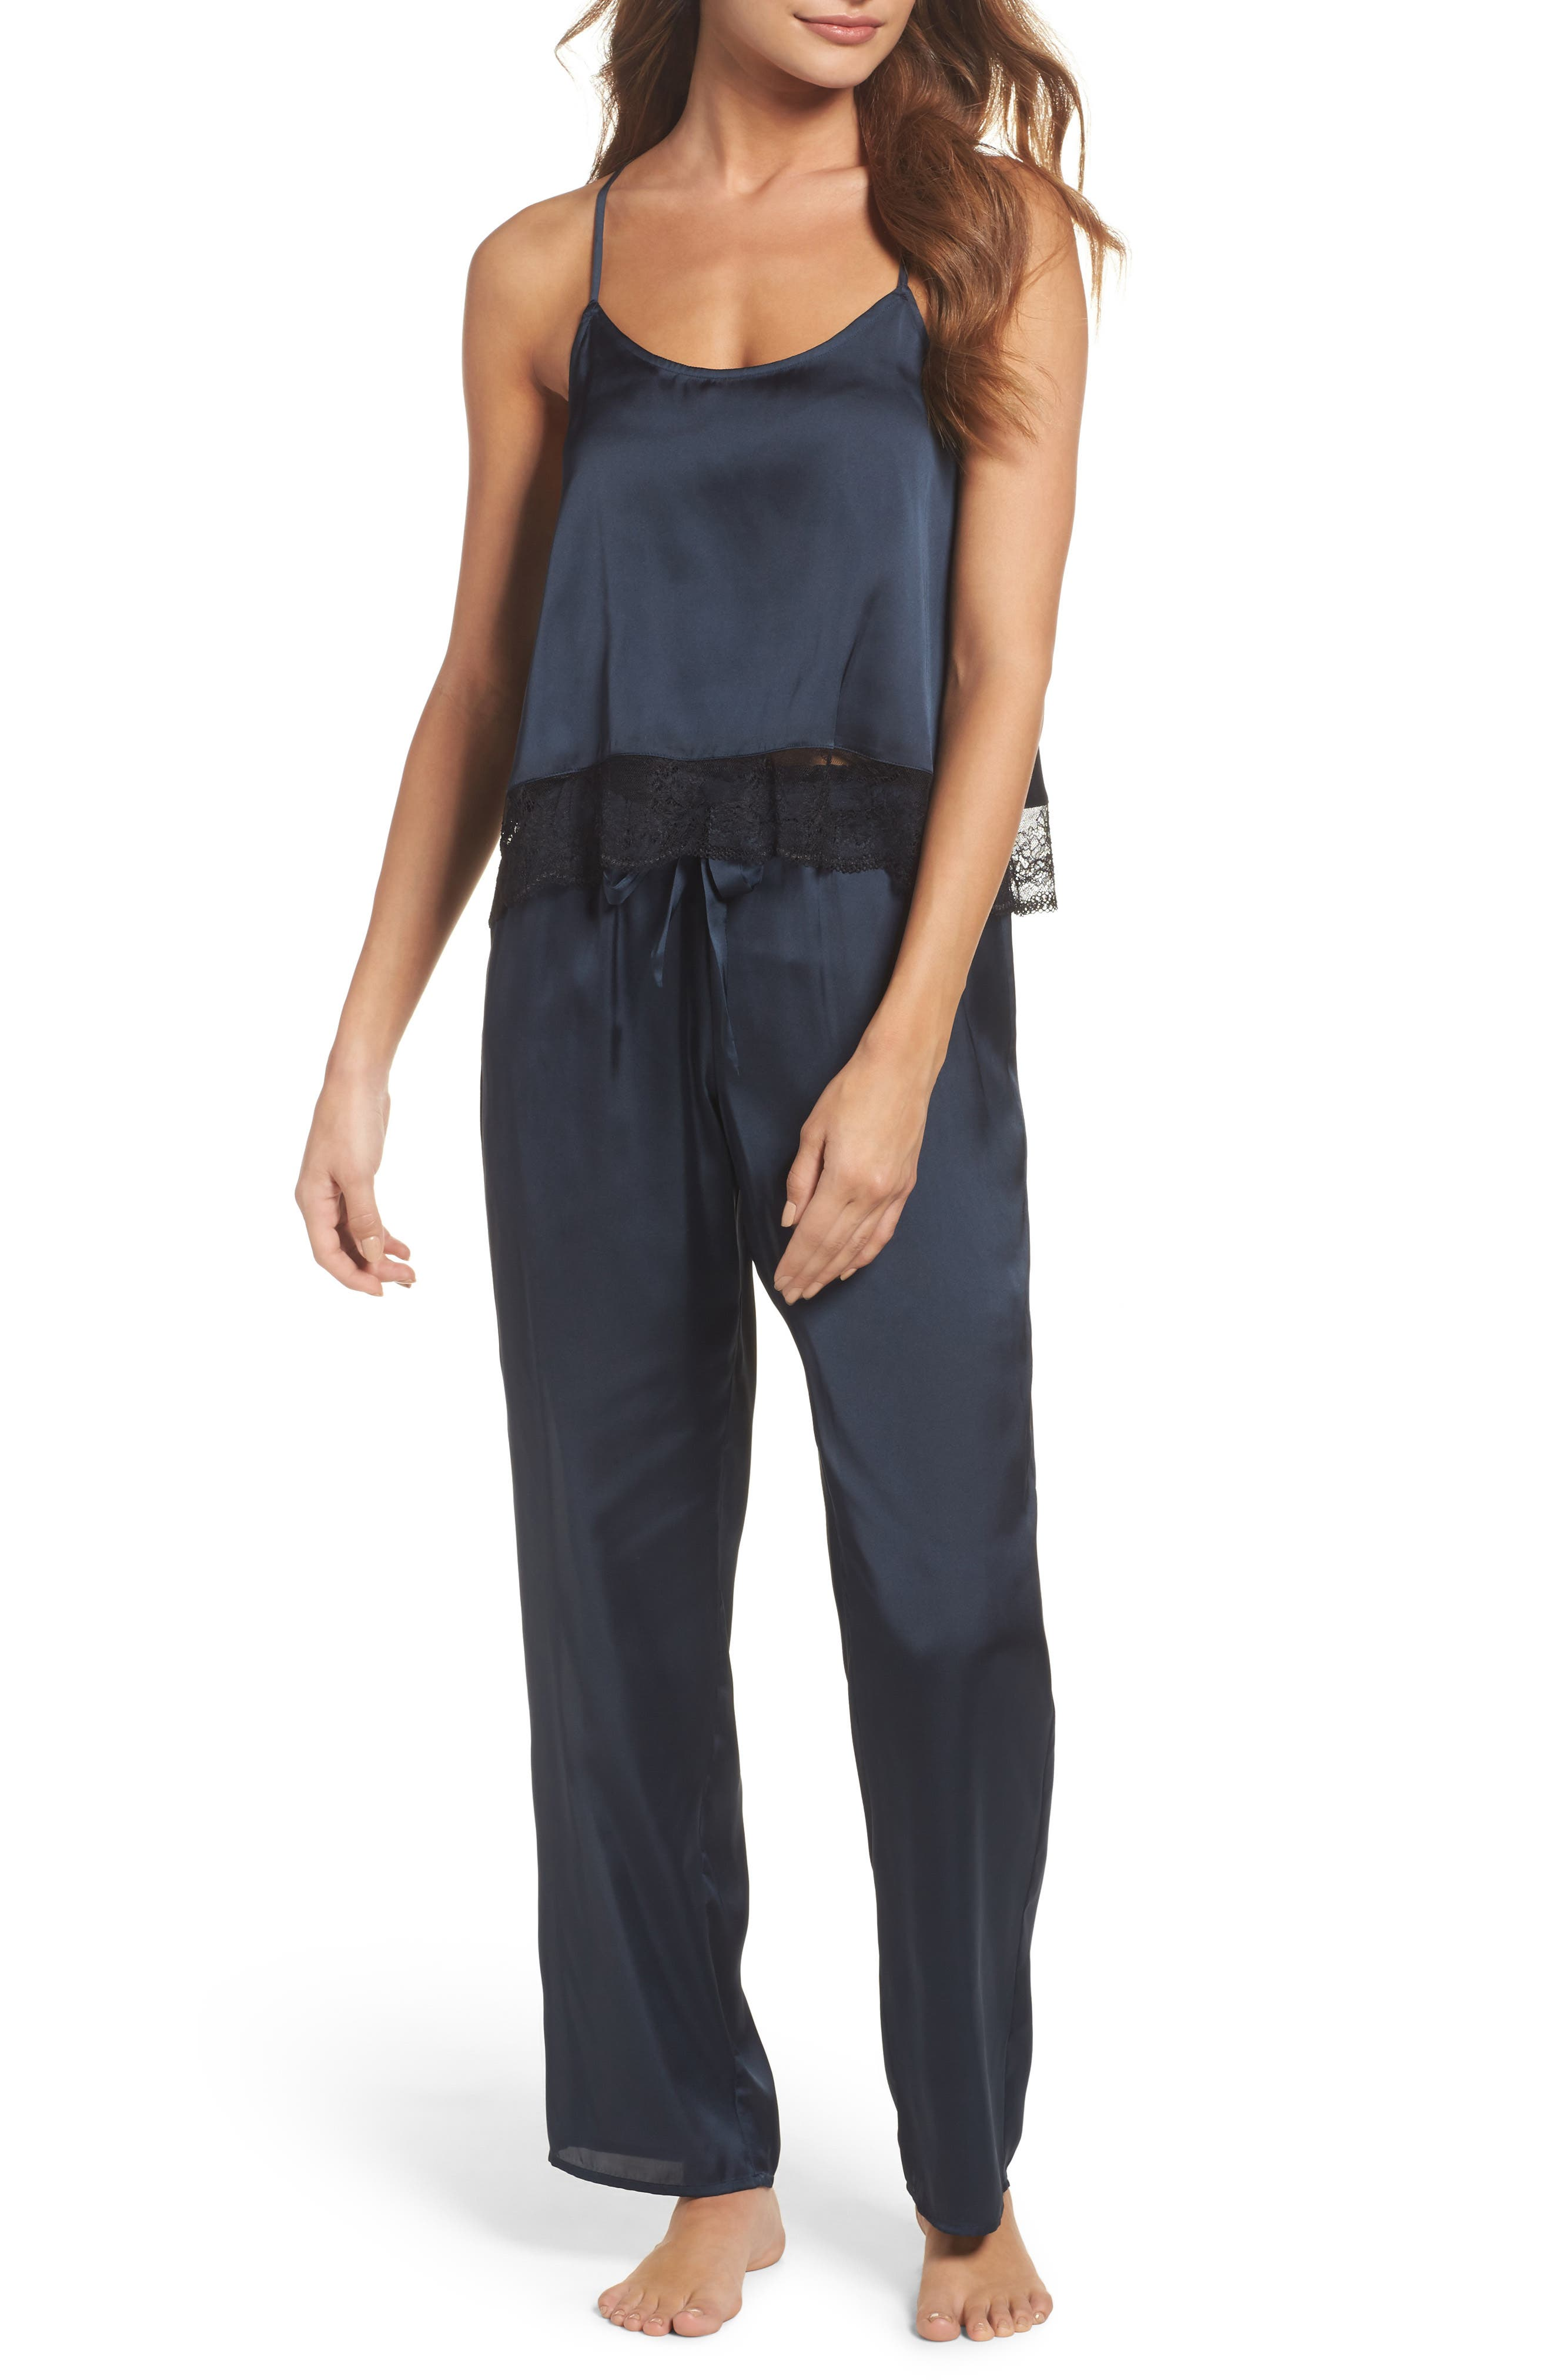 Chelsea28 In My Dreams Camisole & Pajama Pants